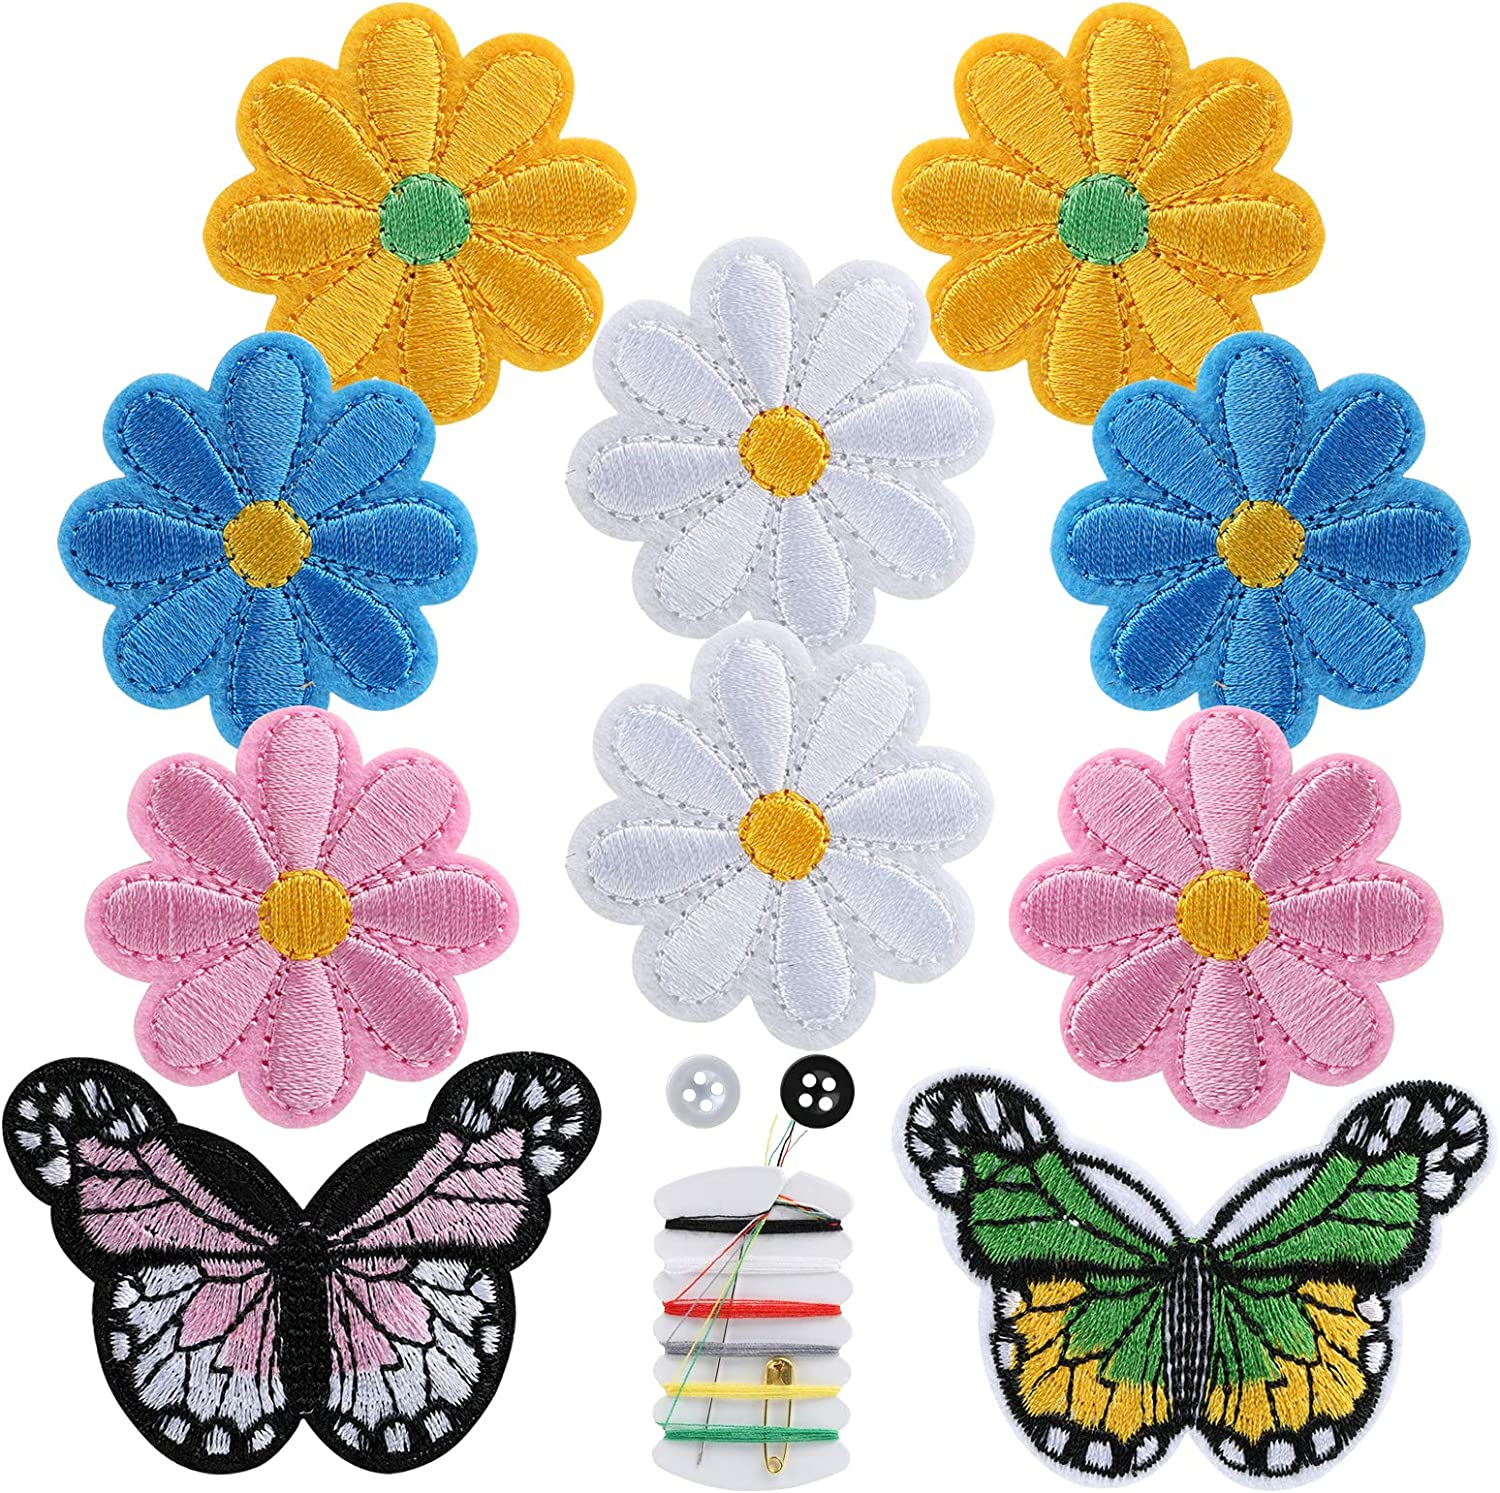 Mixed Color NBEADS 20 Pcs Lace Flower//Butterfly Embroidered Appliques Patches Sewing Fiber Appliques DIY Garment Accessory Appliques Patches for Decoration or Repair of Cloth Dress Garment Jeans